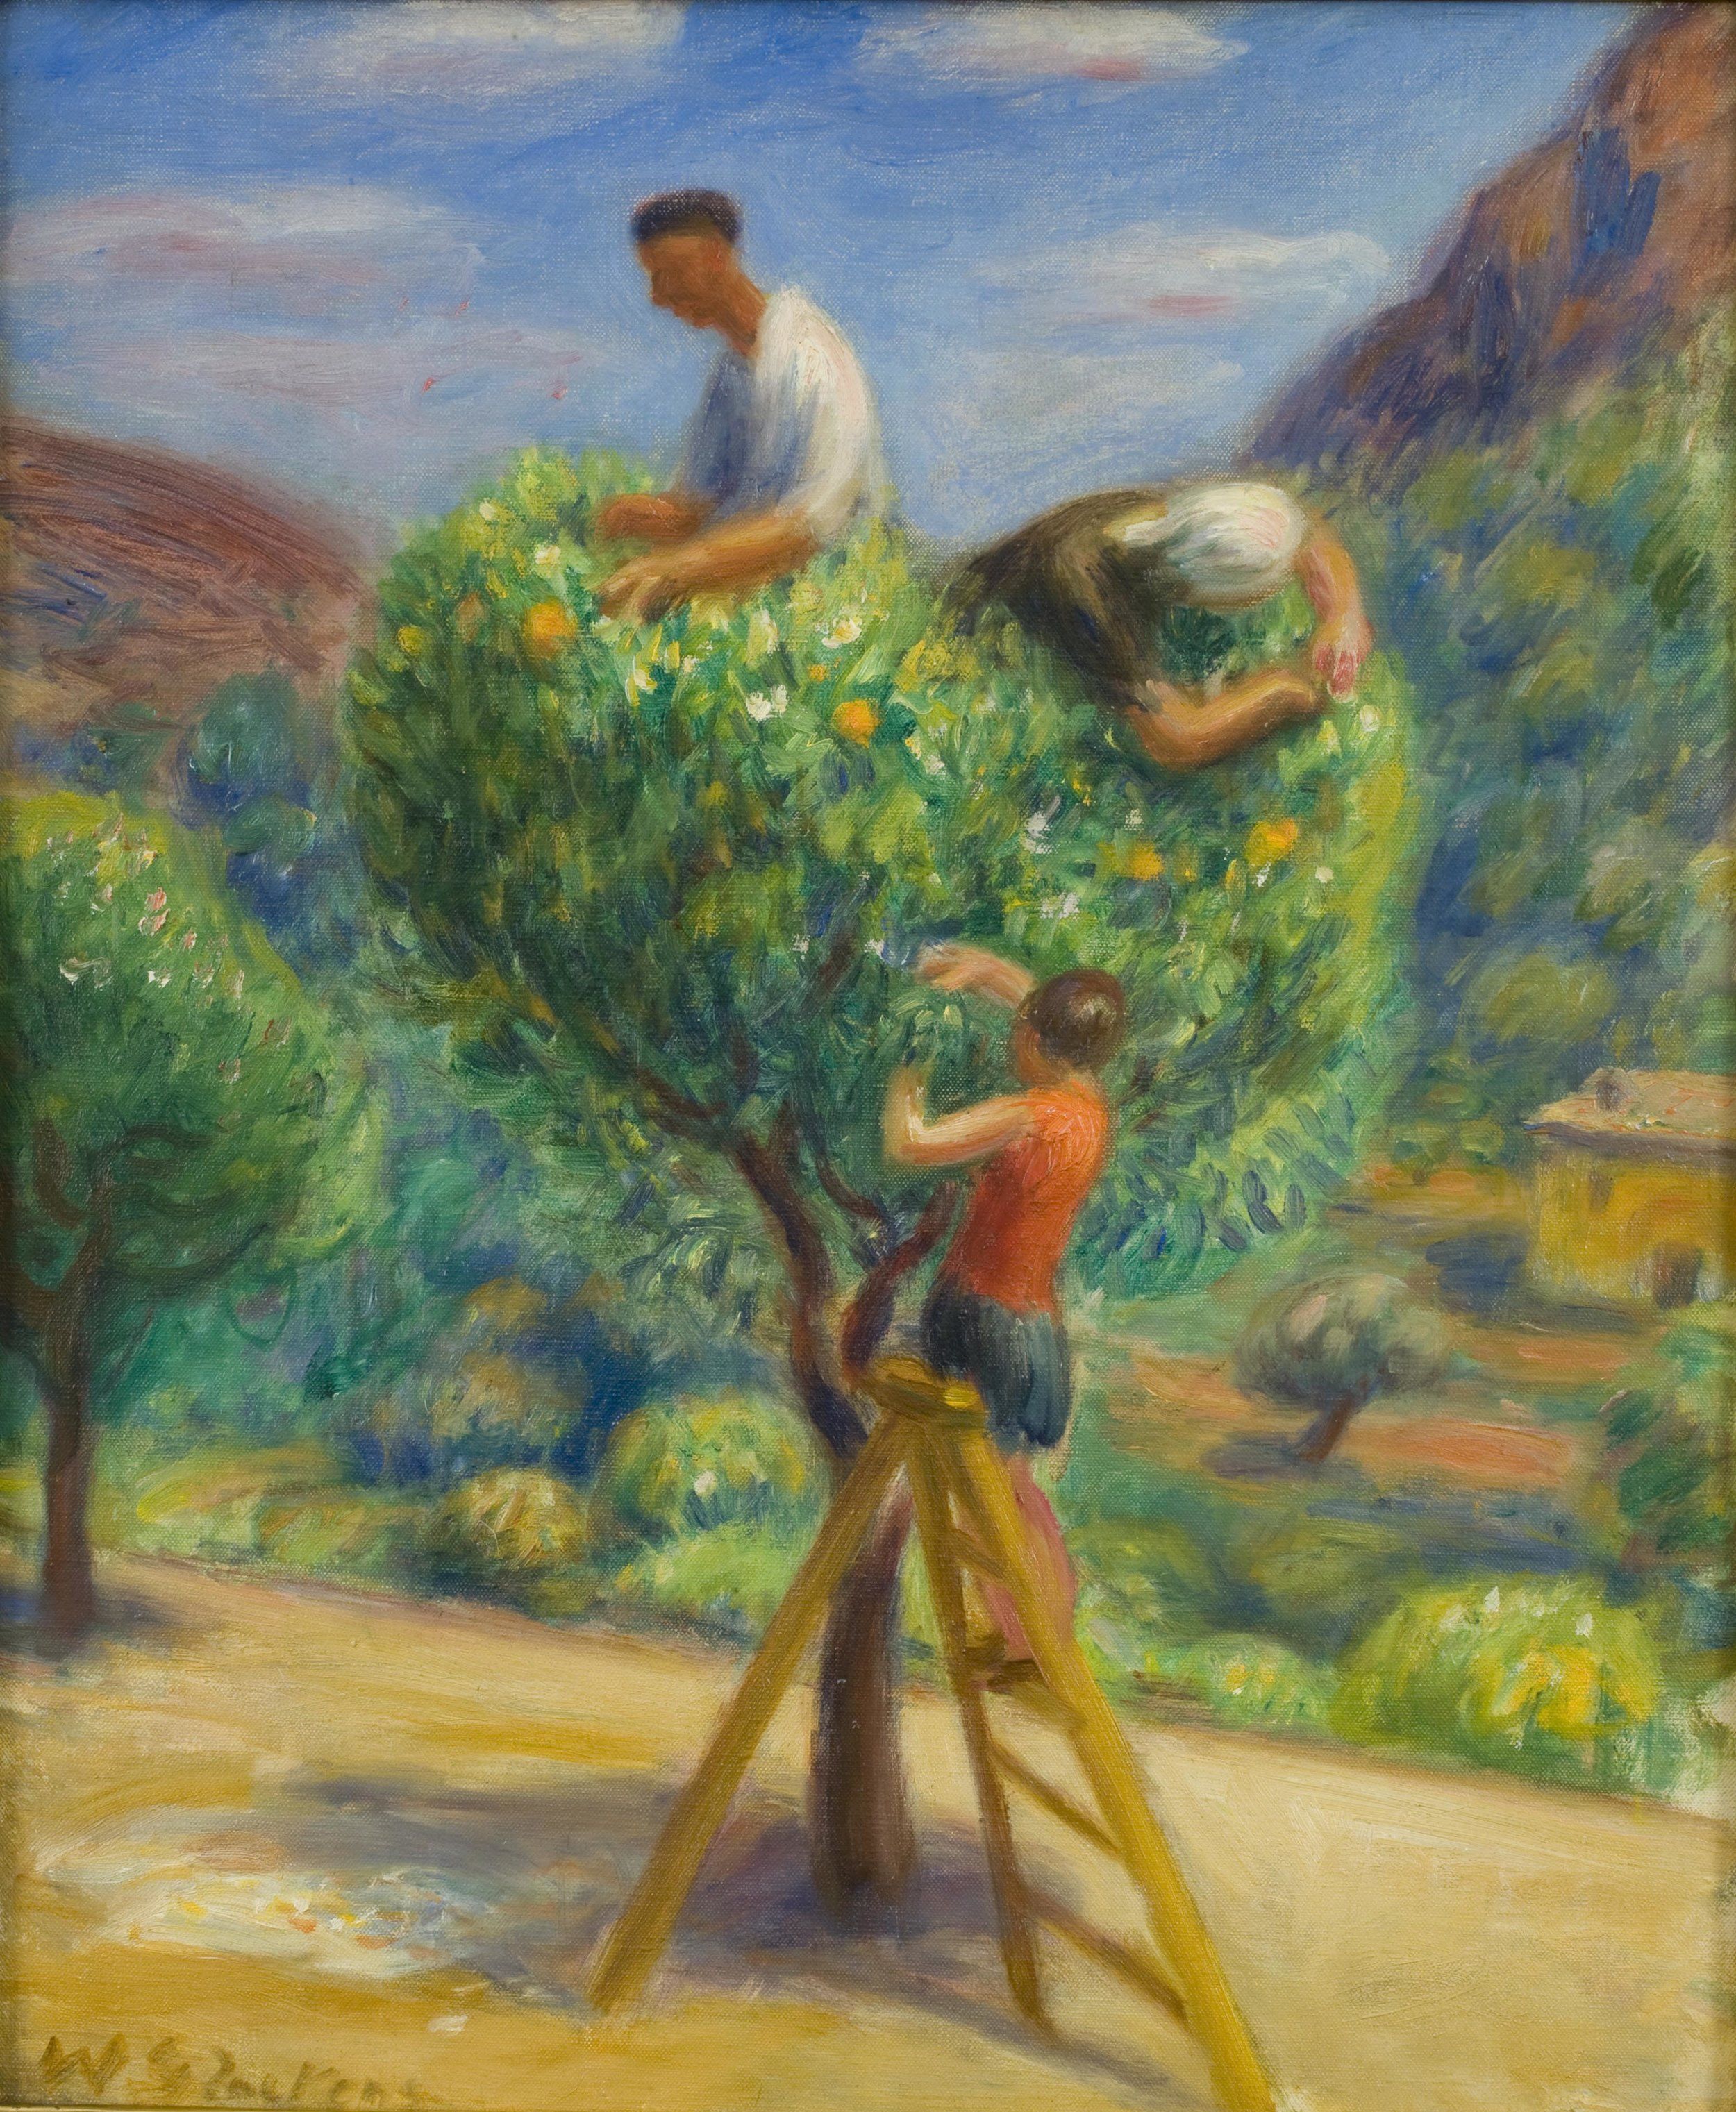 Oil painting of three figures picking fruit from a tree (one on ladder, two in tree)